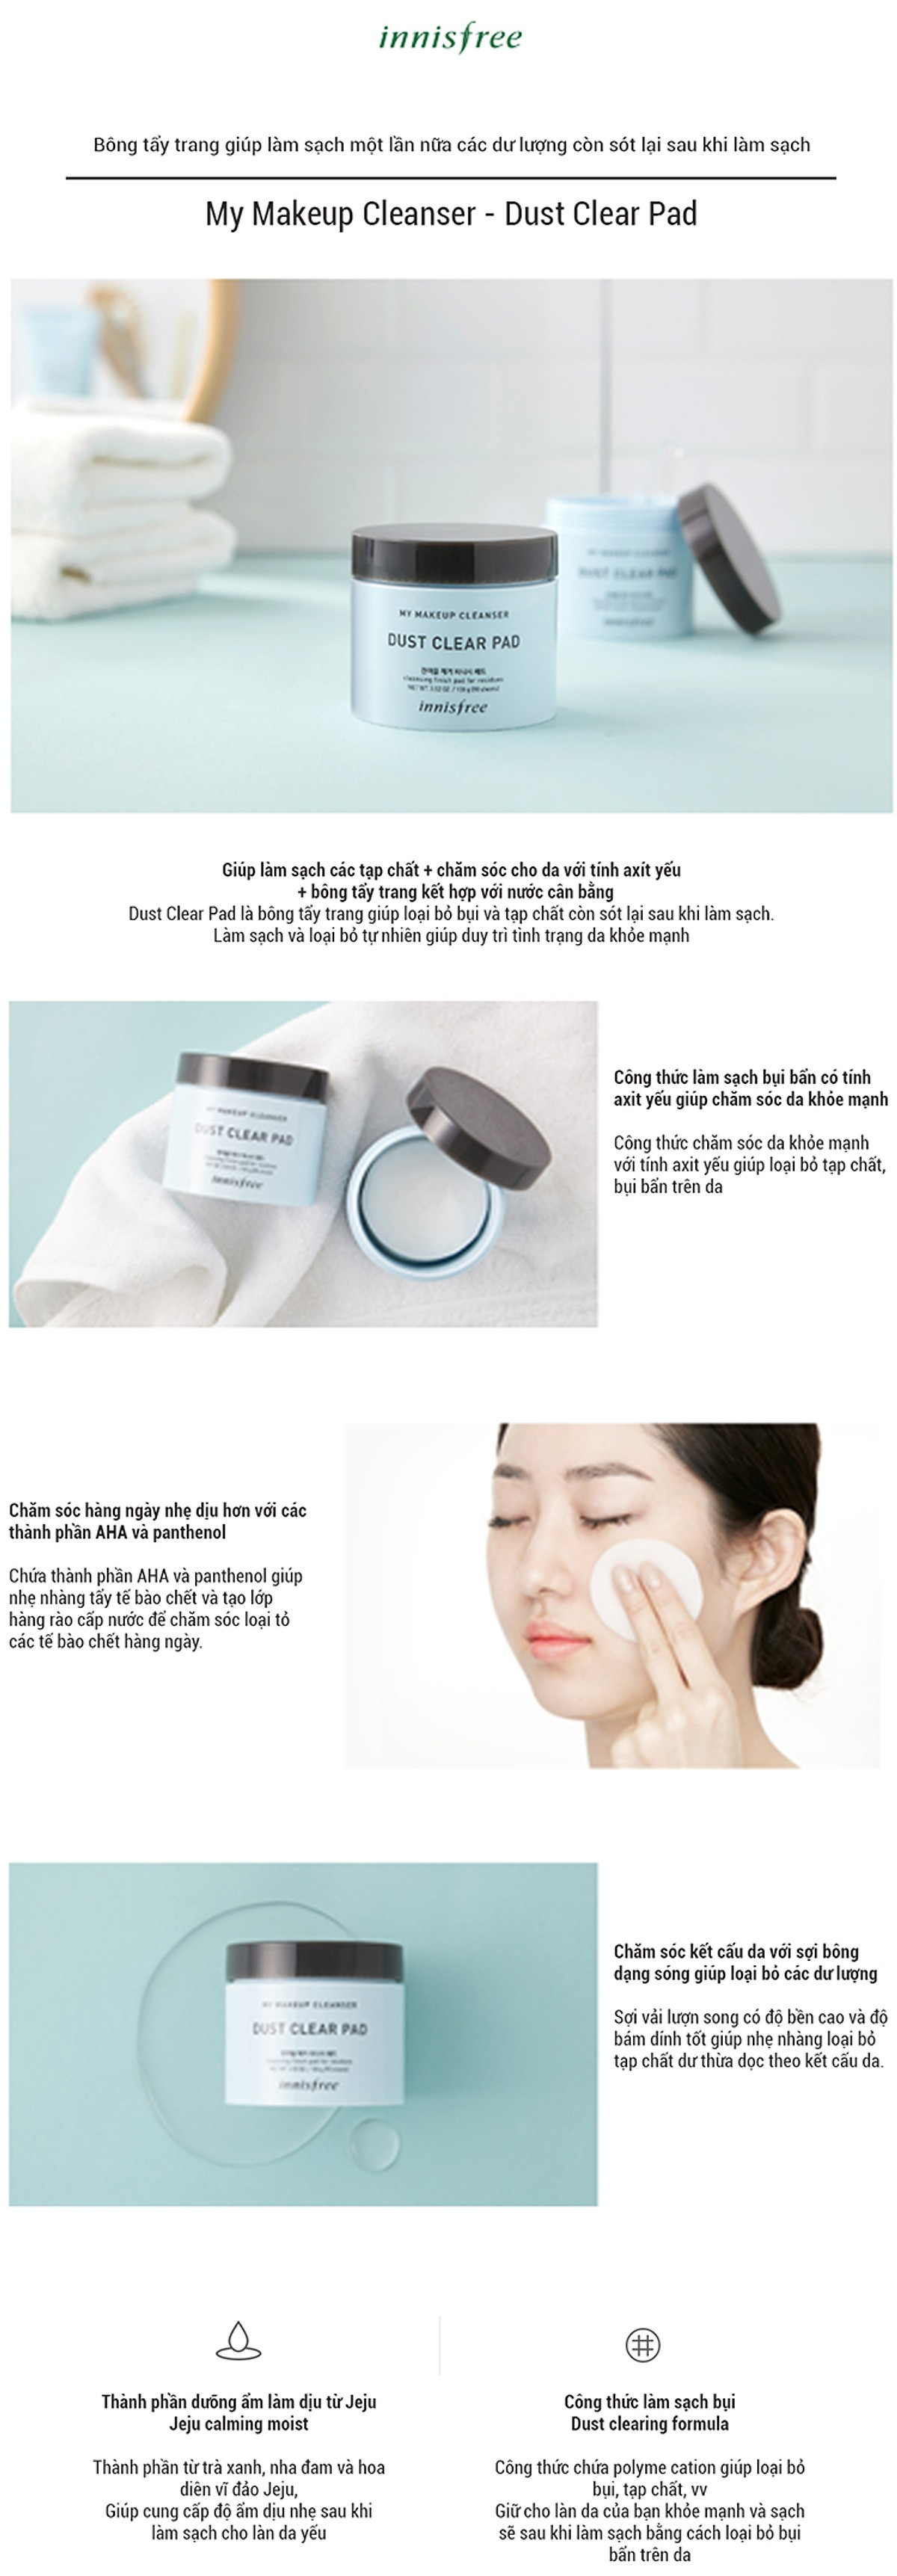 mieng-tay-trang-va-cham-soc-da-innisfree-my-makeup-cleanser-dust-clean-pad